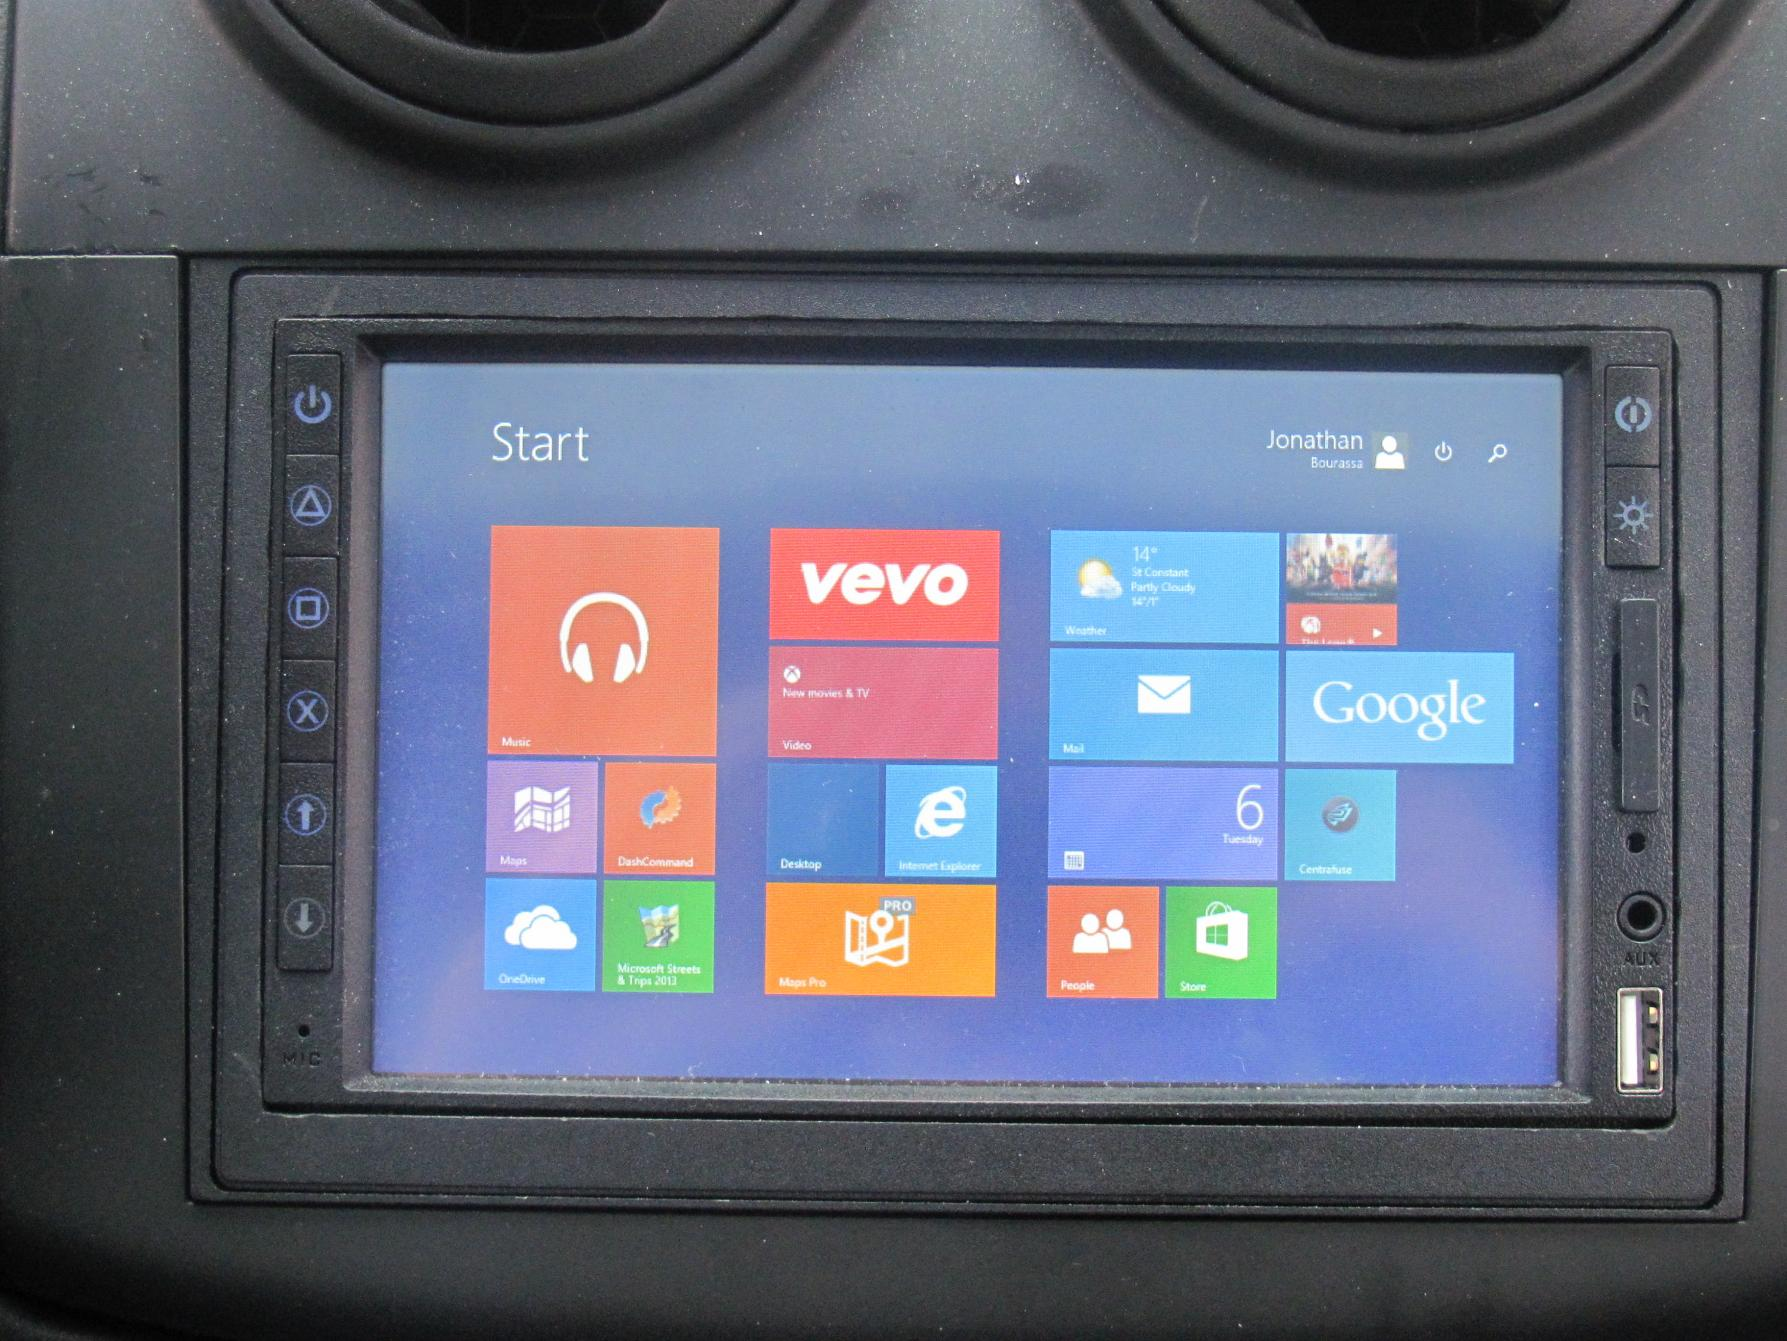 Windows 8 1 car pc replacing the head unit for 2 window in 1 pc